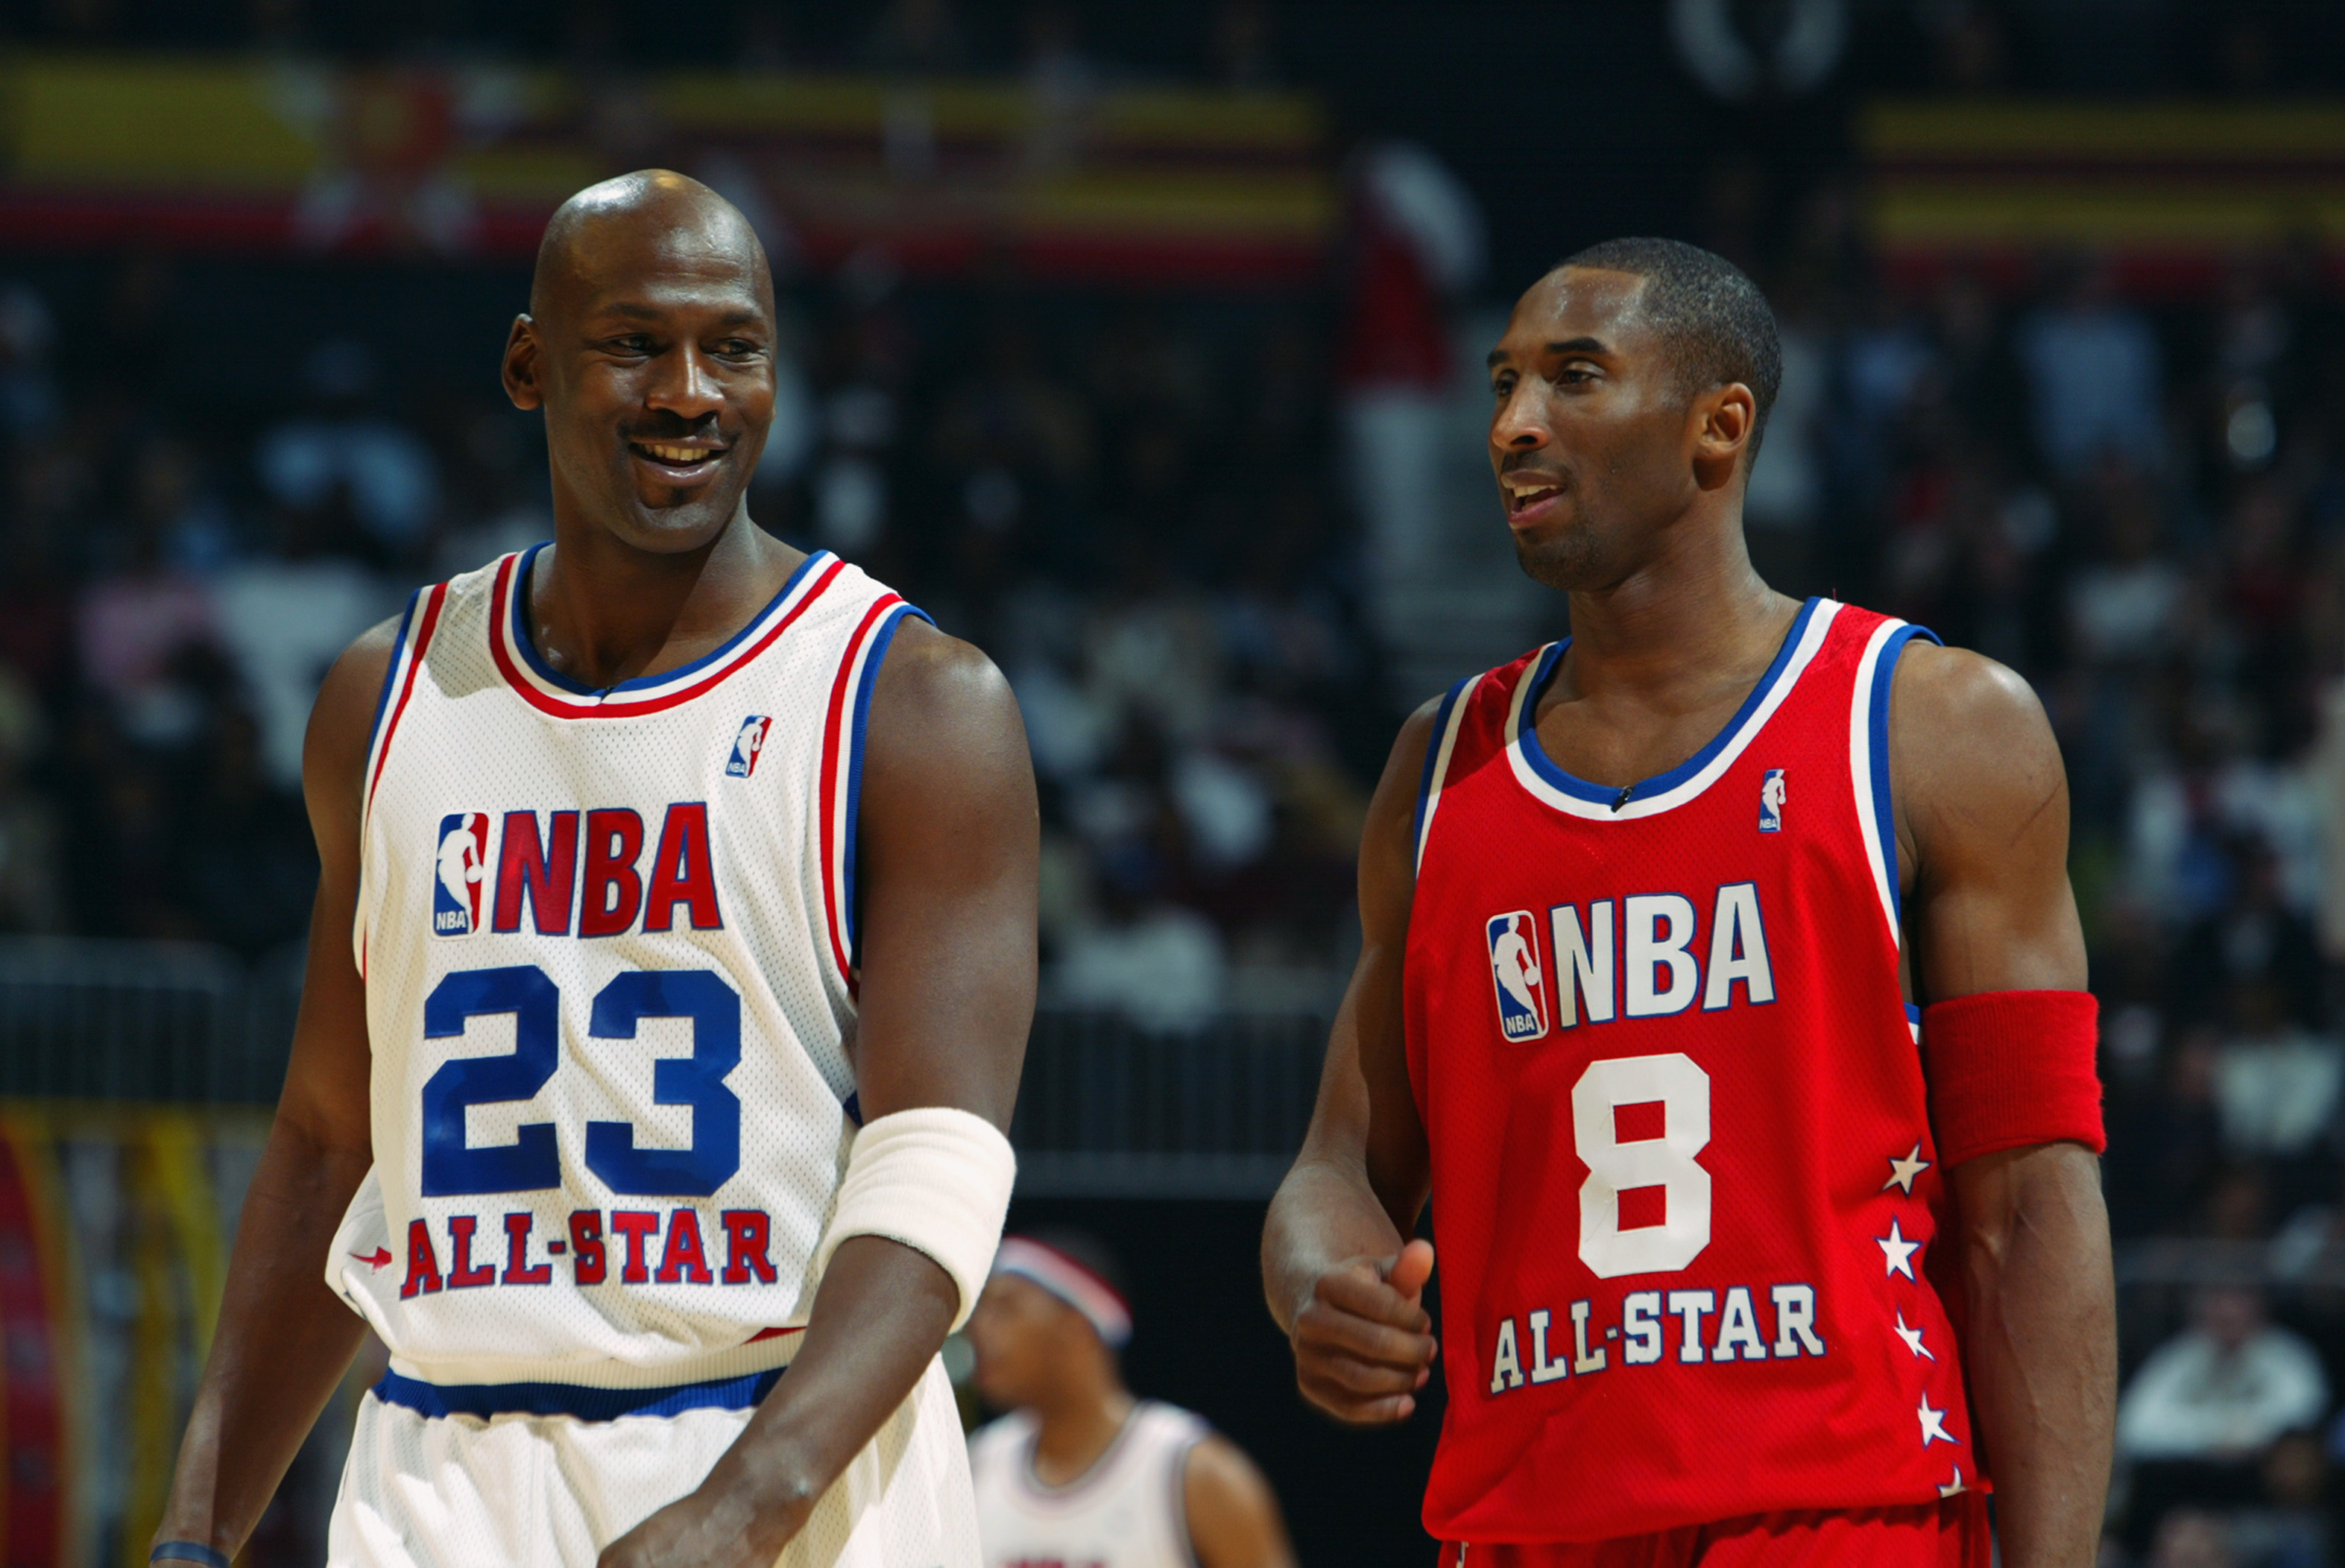 aa43828fdca5 NBA All-Star game recaps  1950-2018